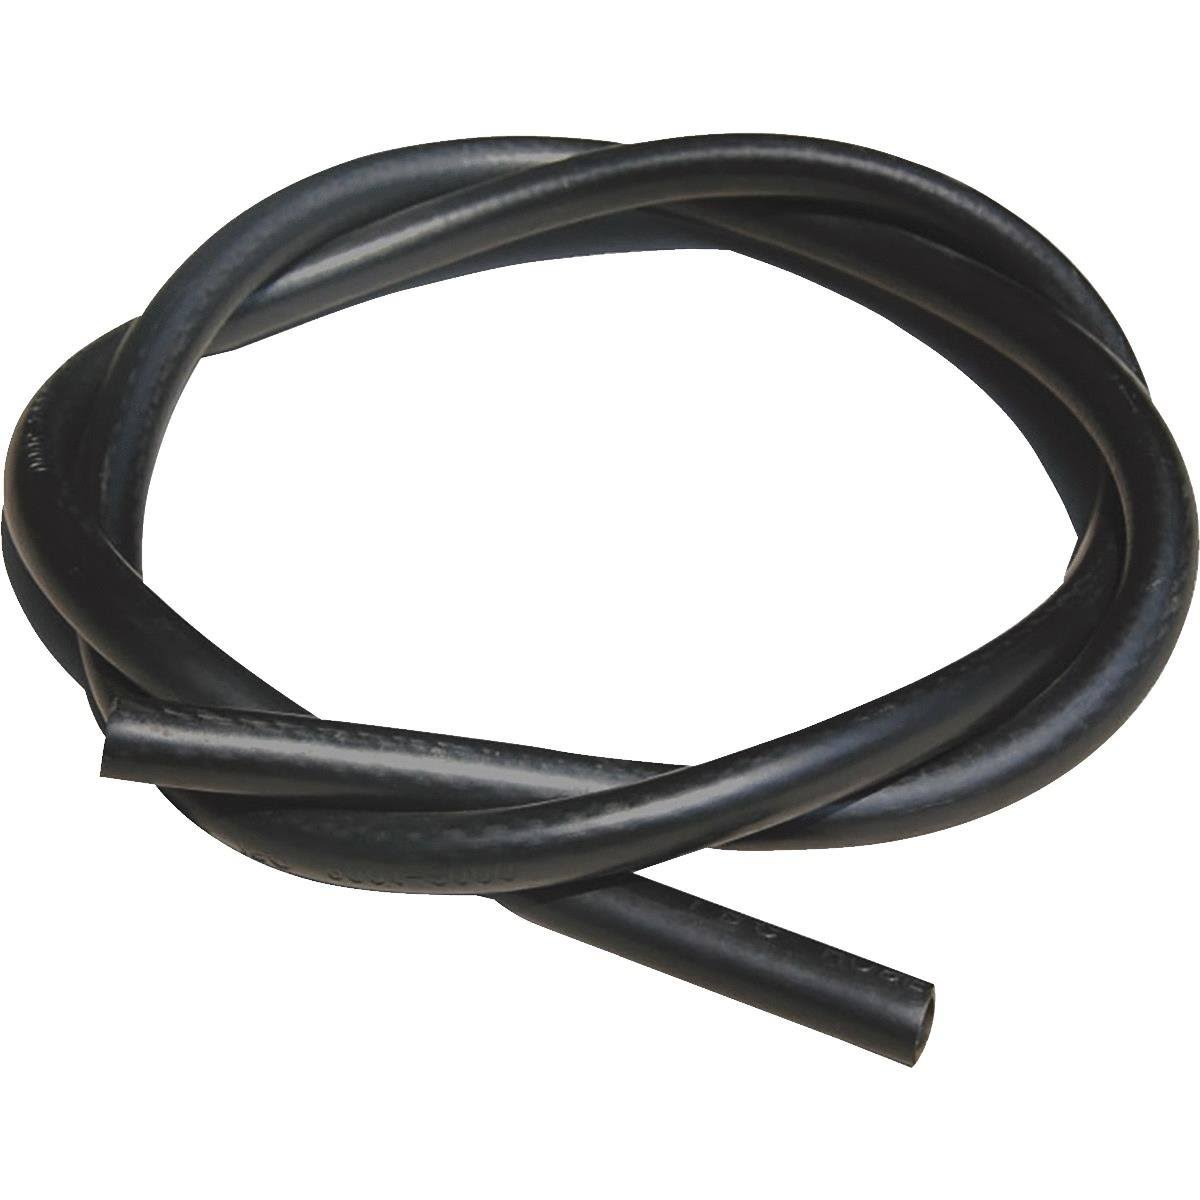 "William H. Harvey Wash Machine Drain Hose - 1-1.25"" x 6'"